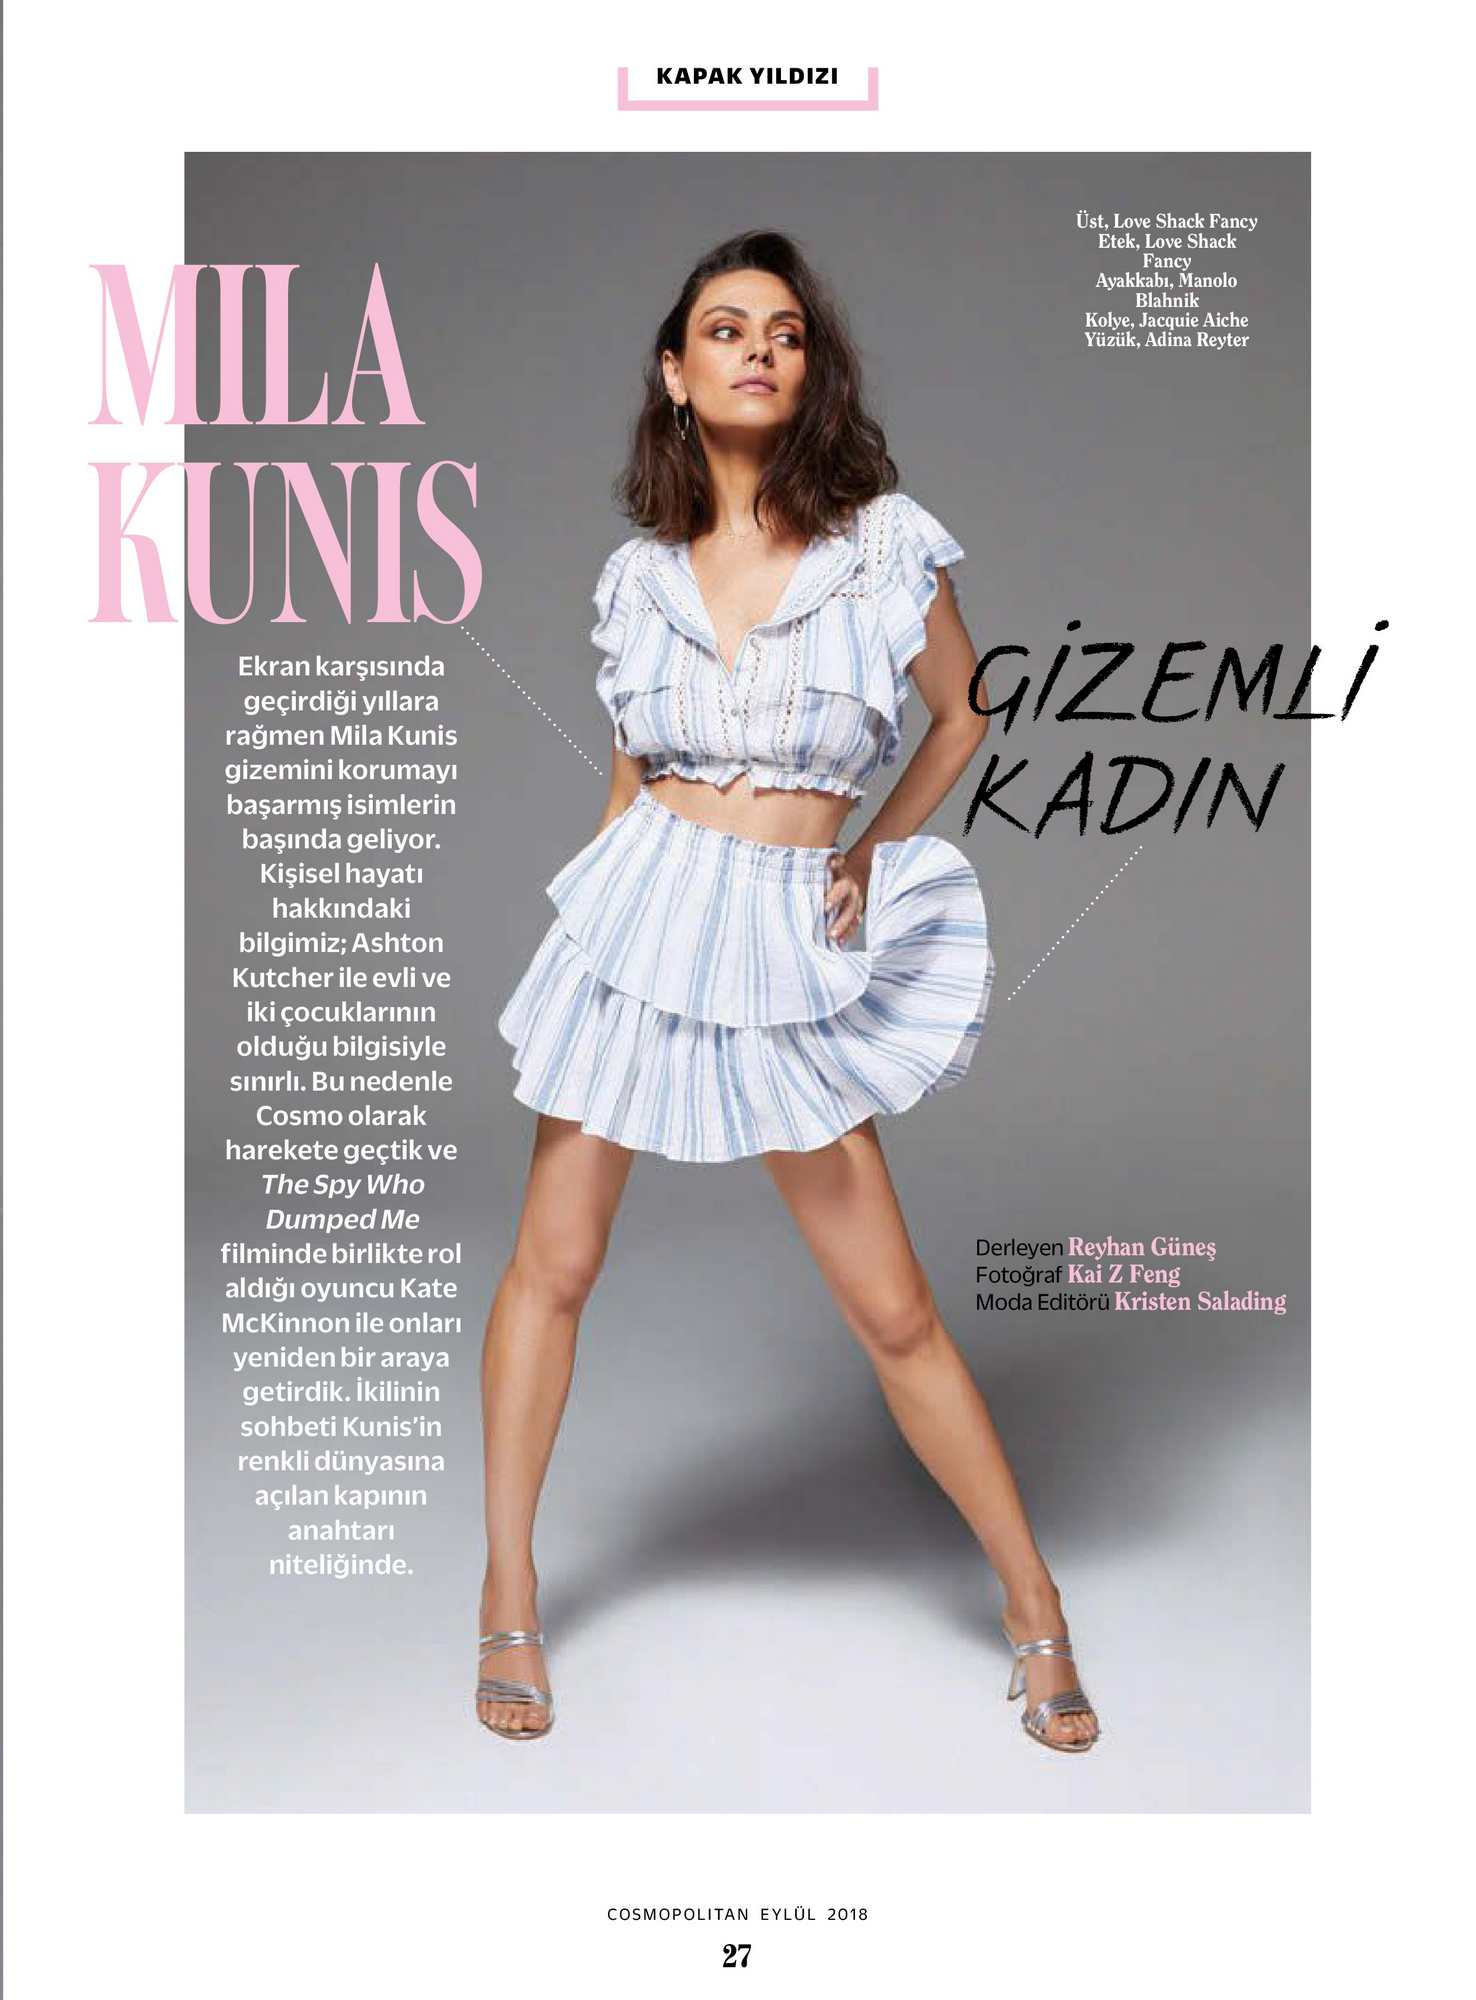 Mila-Kunis-Cosmopolitan-Turkey-September-201802d7a6965321684.jpg